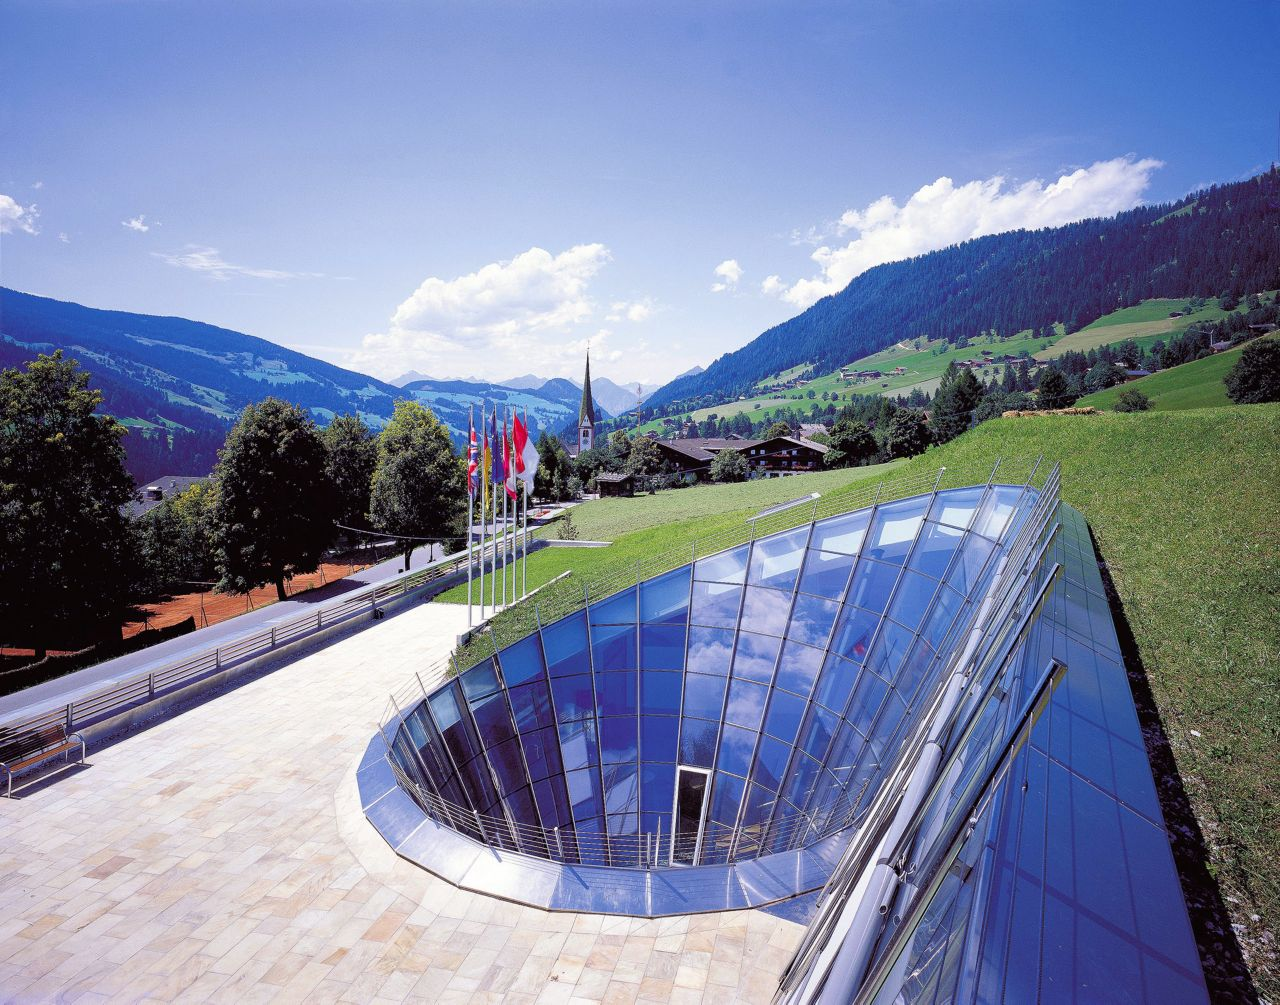 Builiding with green roof in the mountains